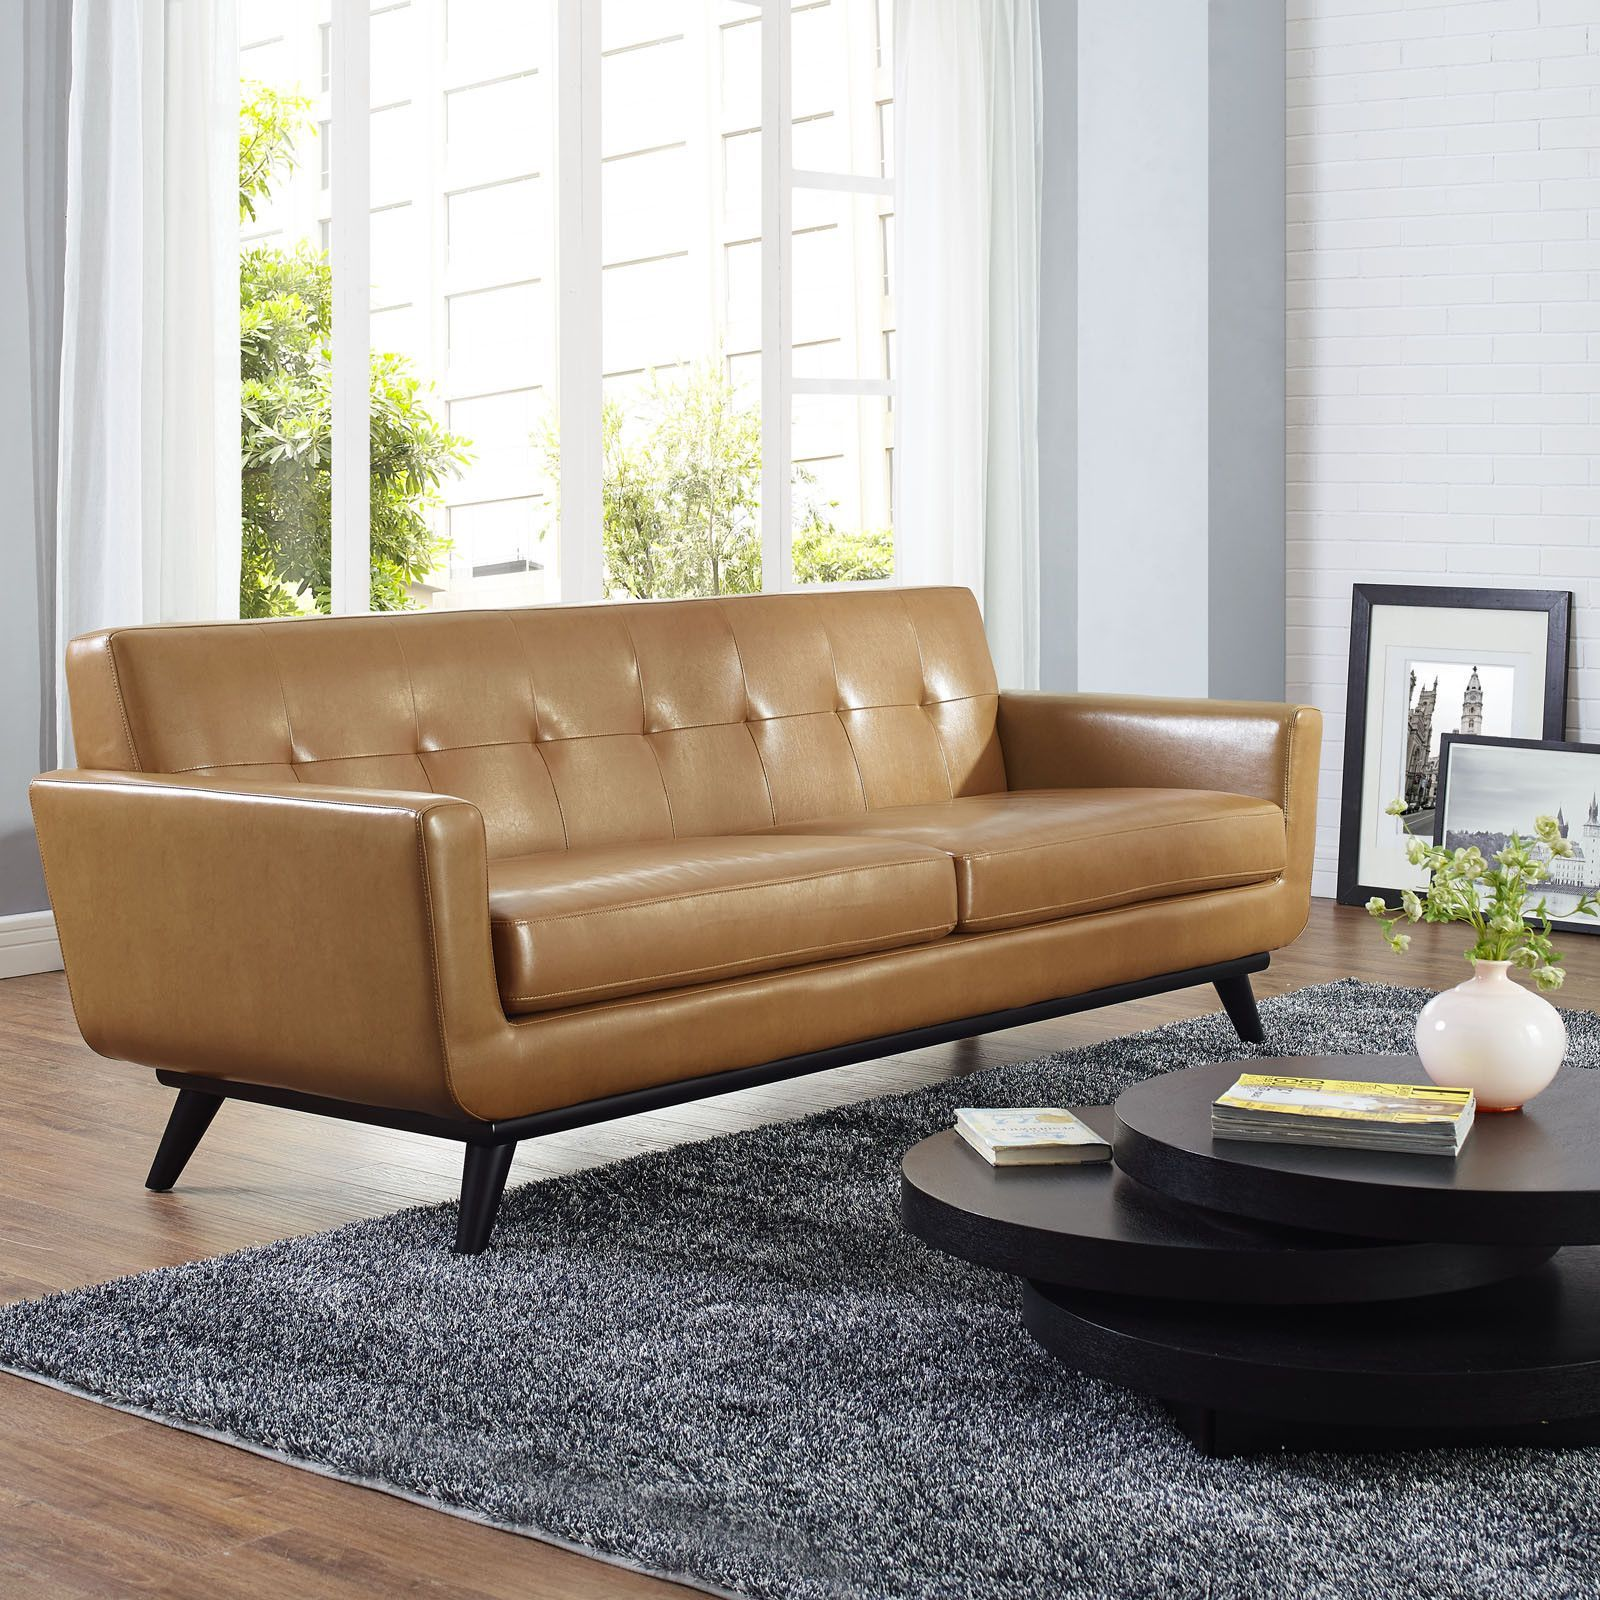 Modway Engage Bonded Leather Sofa 沙发 sofa Pinterest